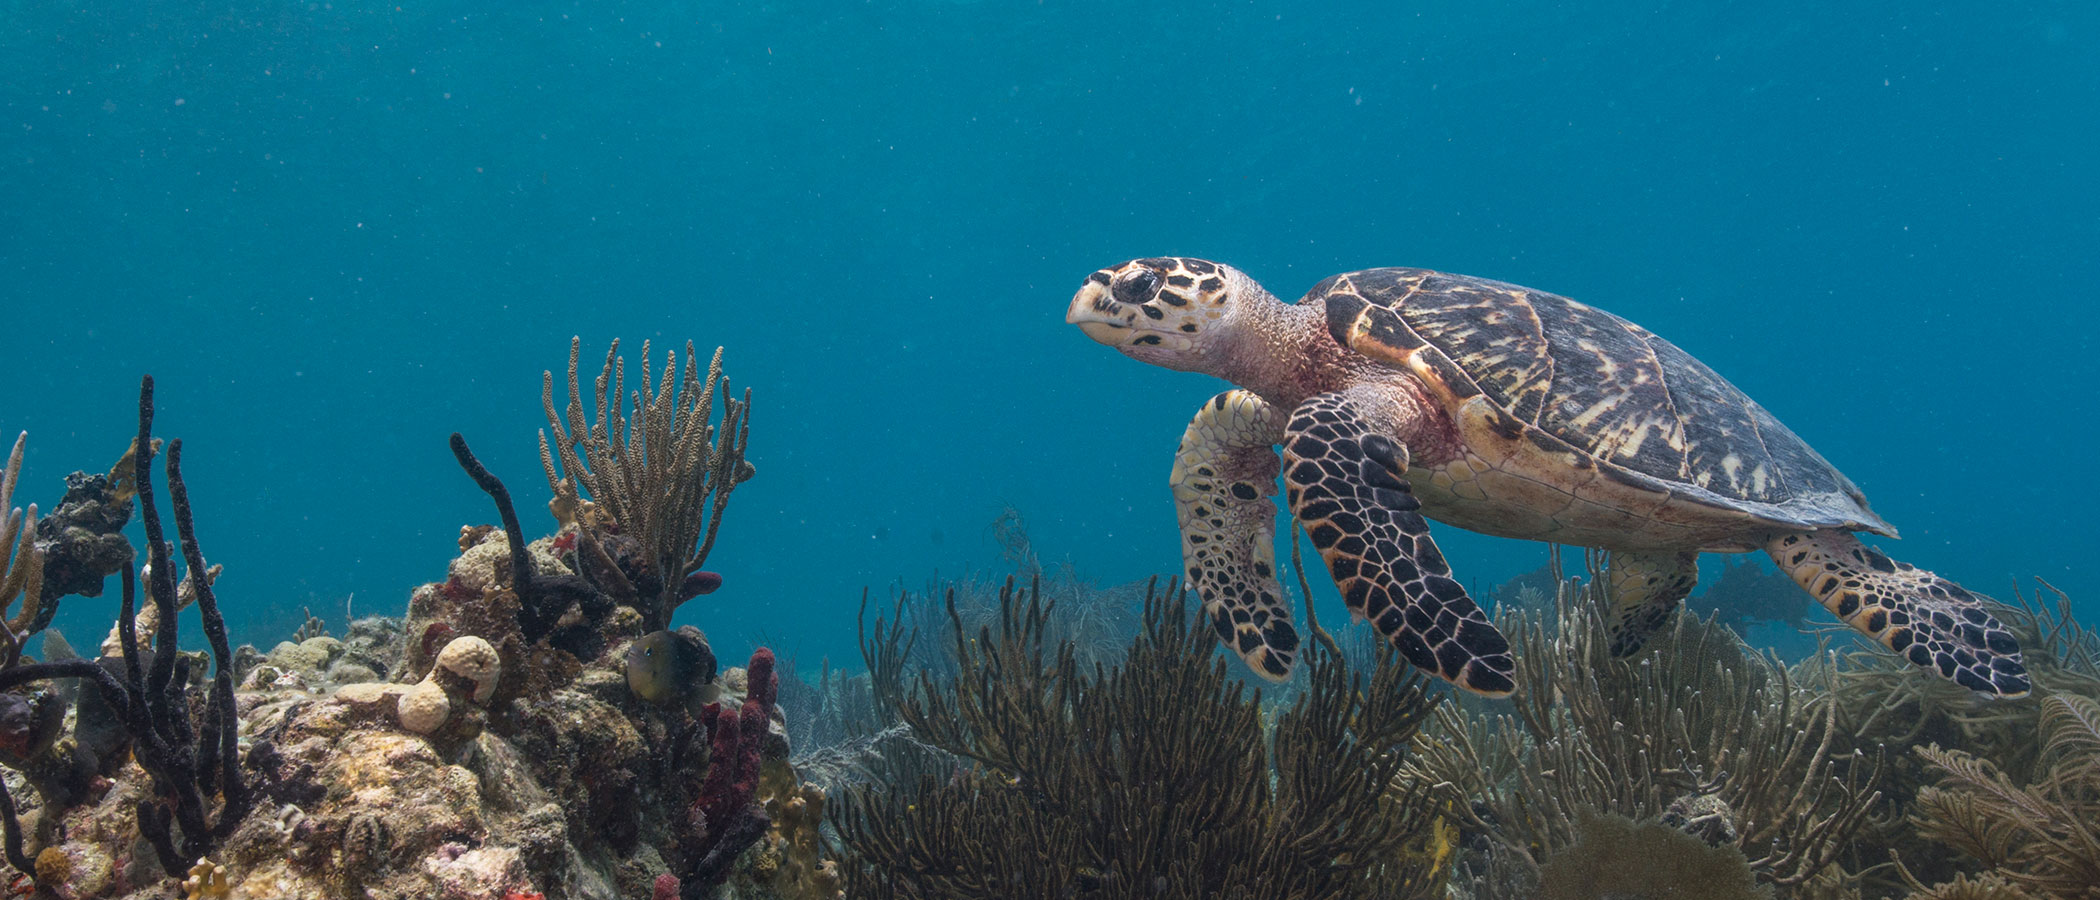 A sea turtle swimming above a coral reef